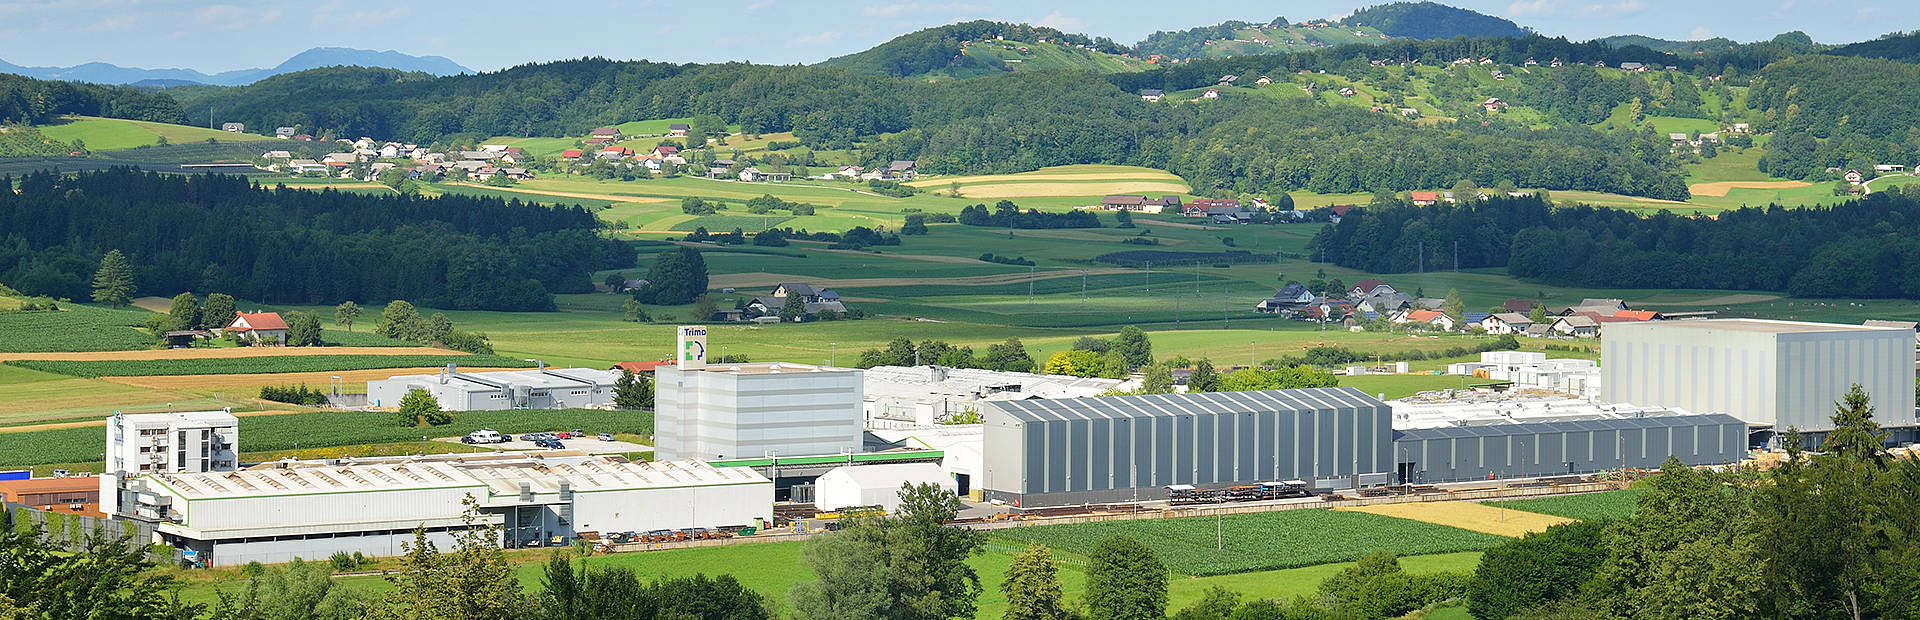 Trimo headquarter and production facilities